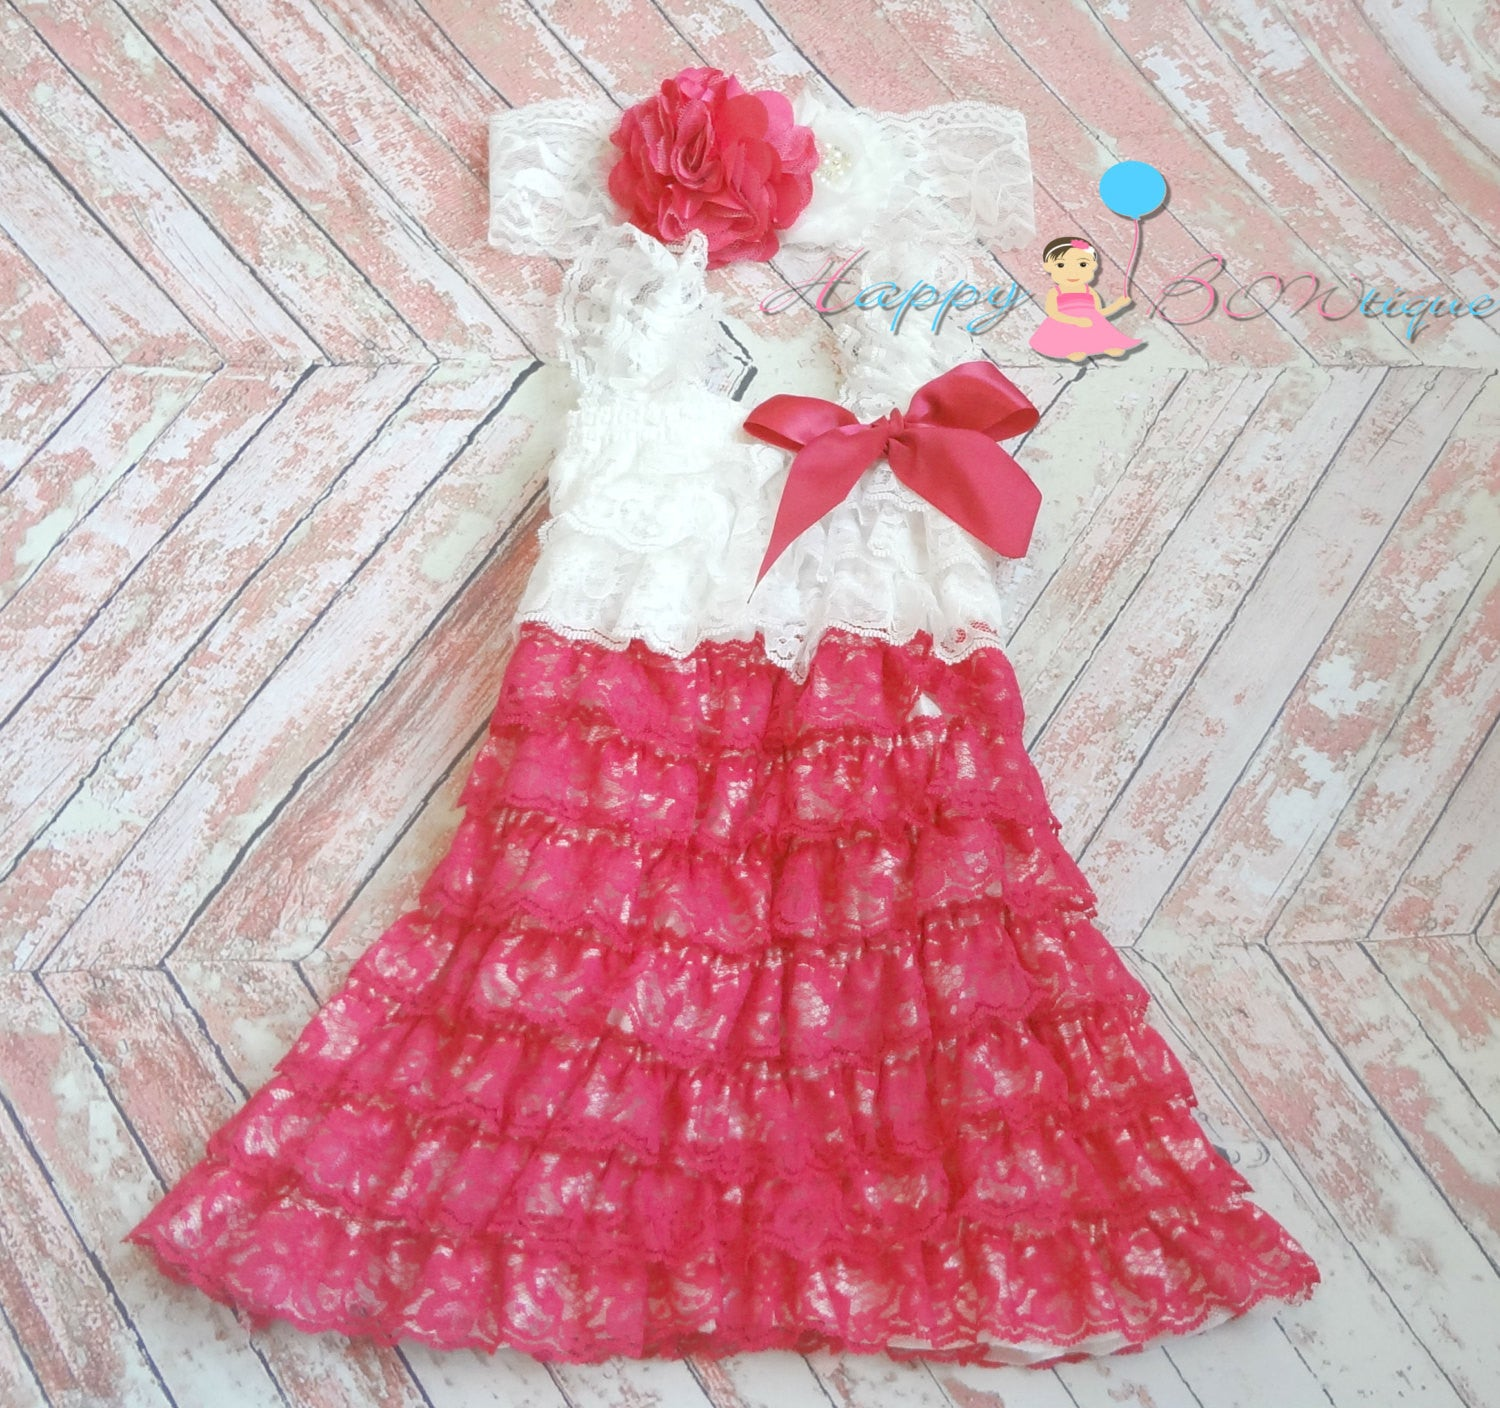 Girl's Fushia Dress/ Hot Pink White Girl's Lace Dress set - Happy BOWtique - children's clothing, Baby Girl clothing